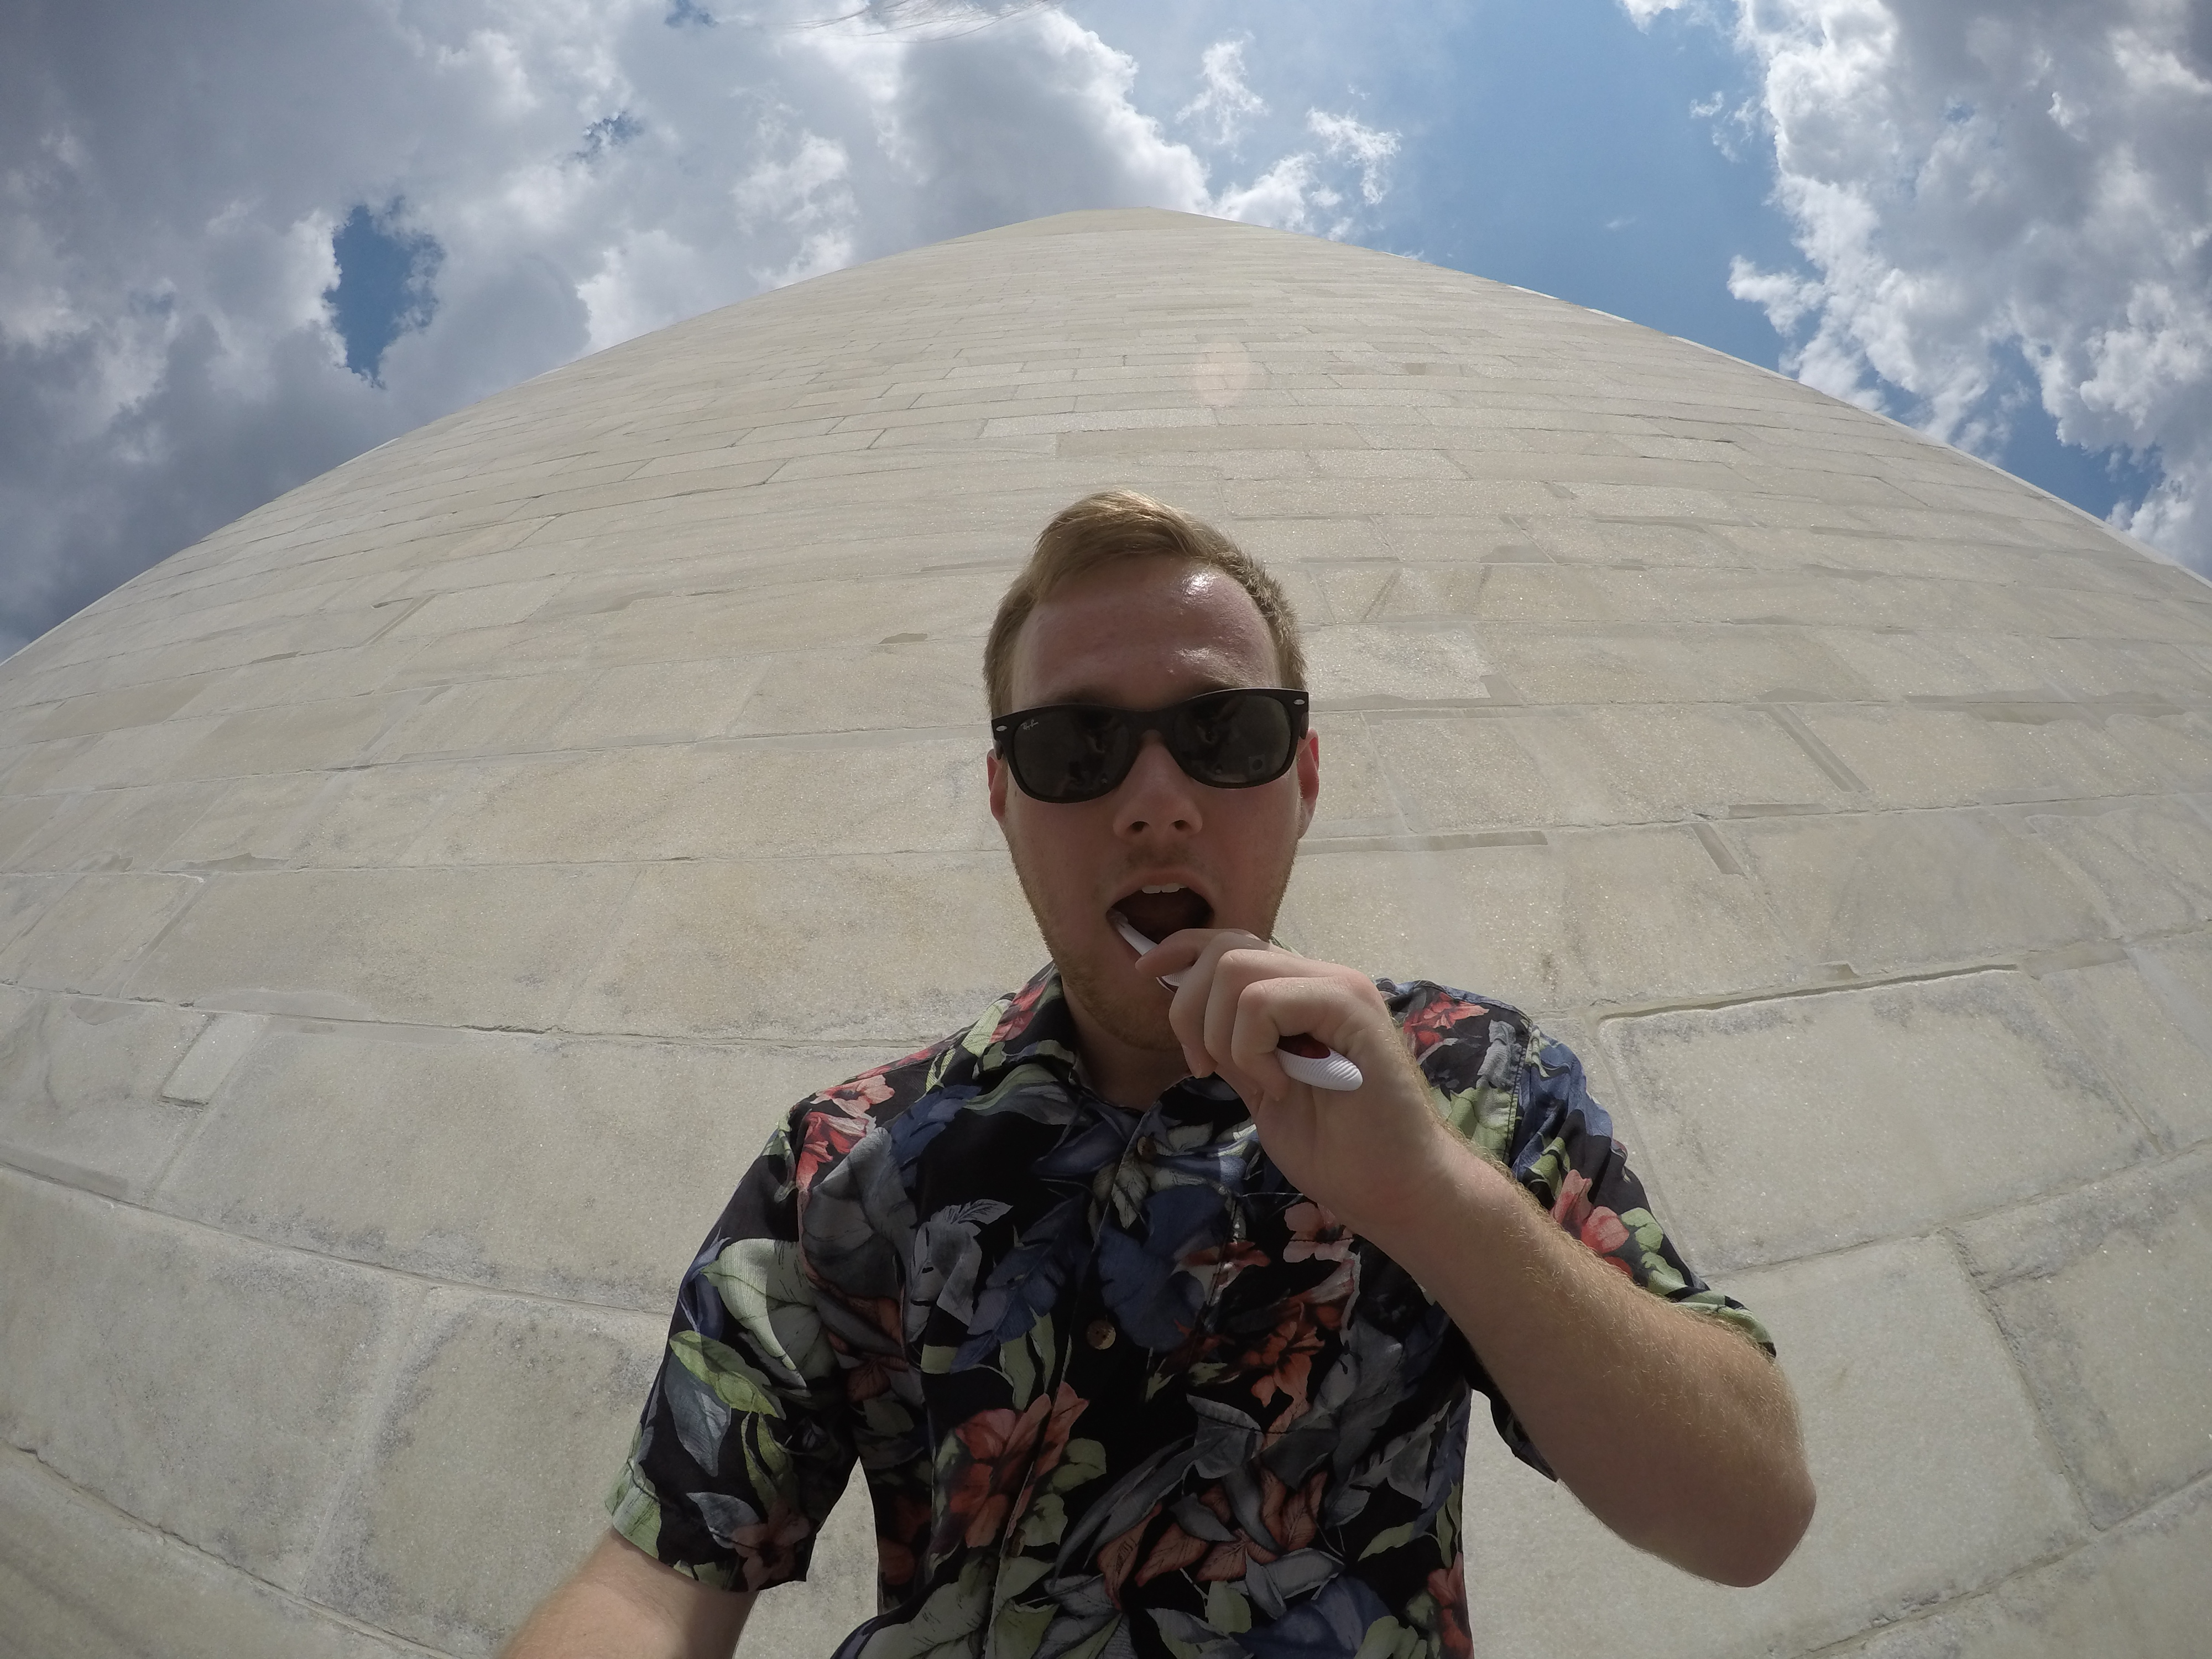 Toothbrush Challenge at the Washington Monument